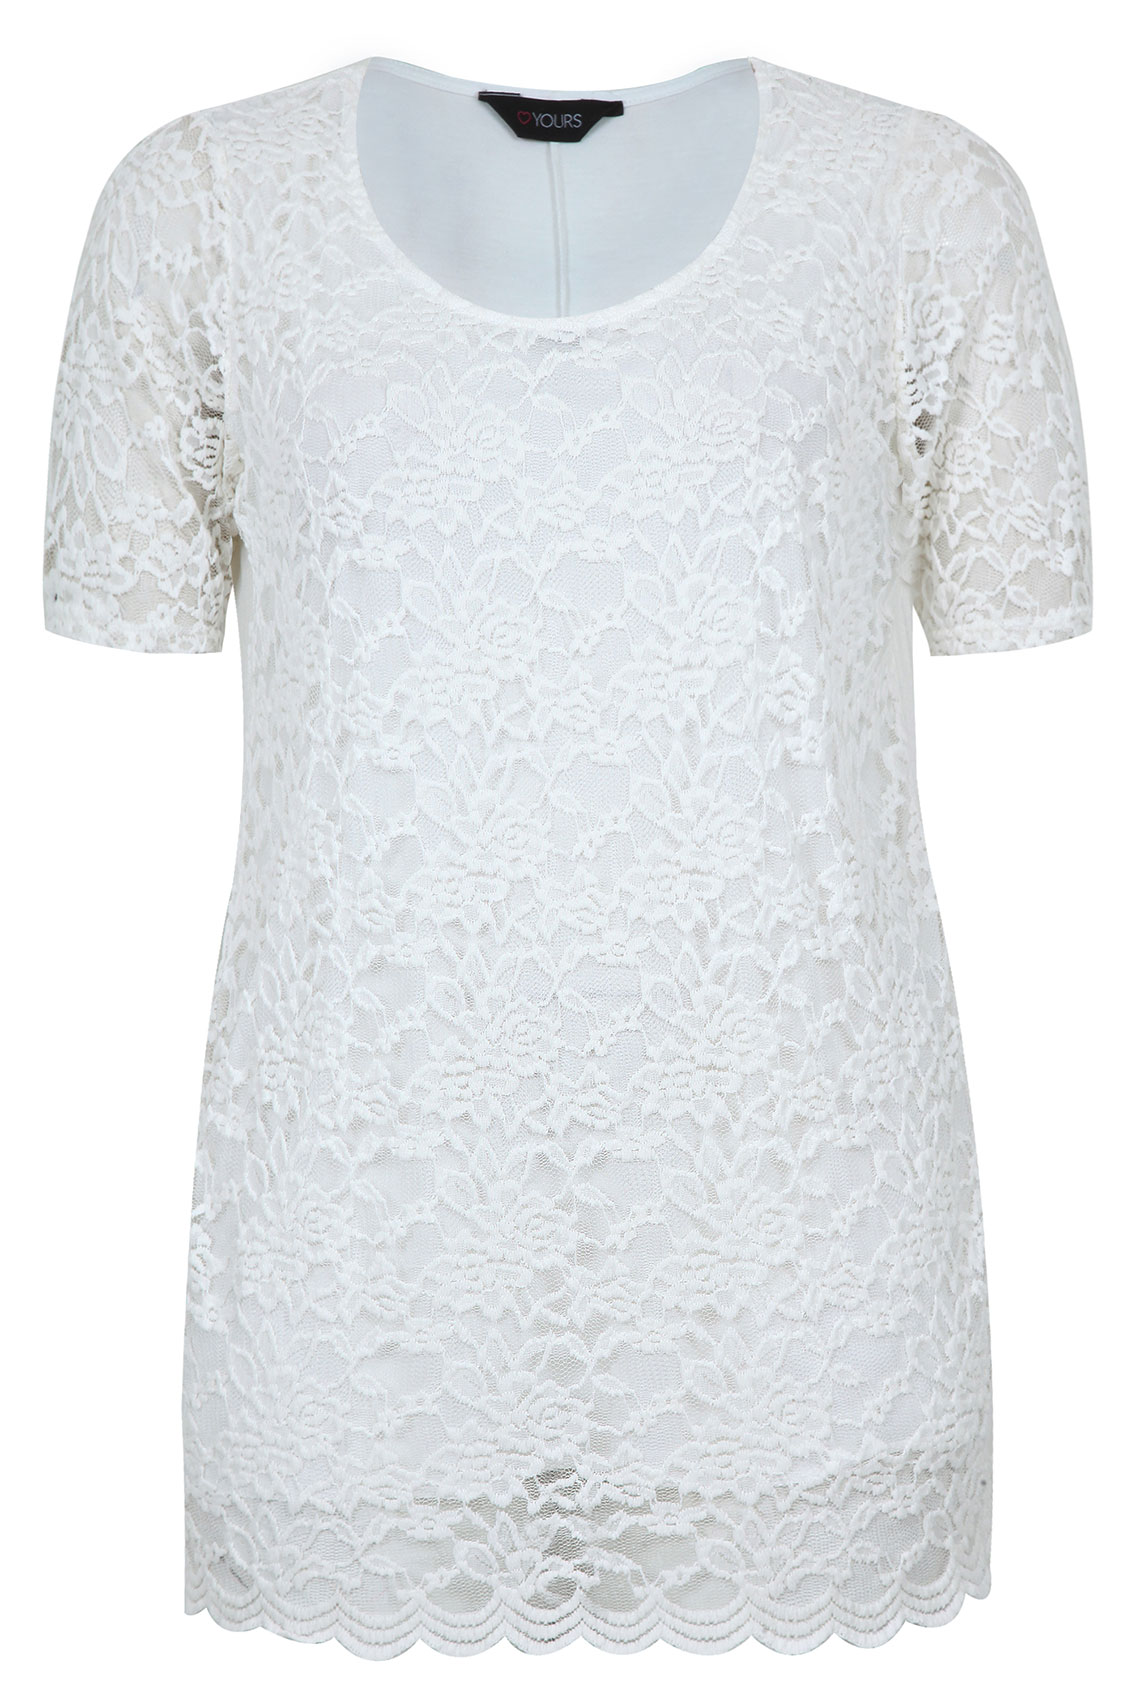 Scalloped Lace Top Top With Scalloped Hem